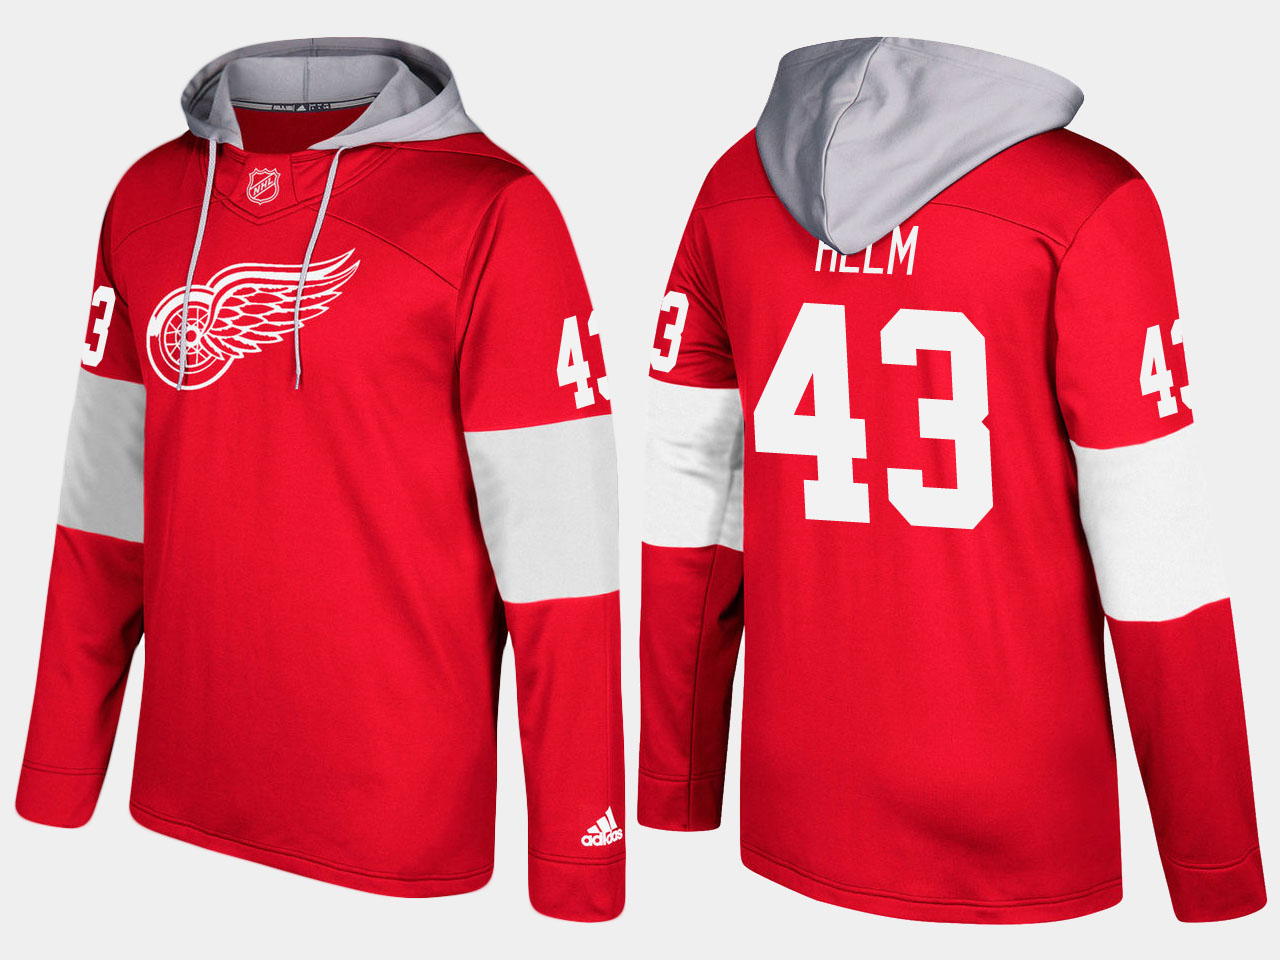 NHL Men Detroit red wings 43 darren helm red hoodie